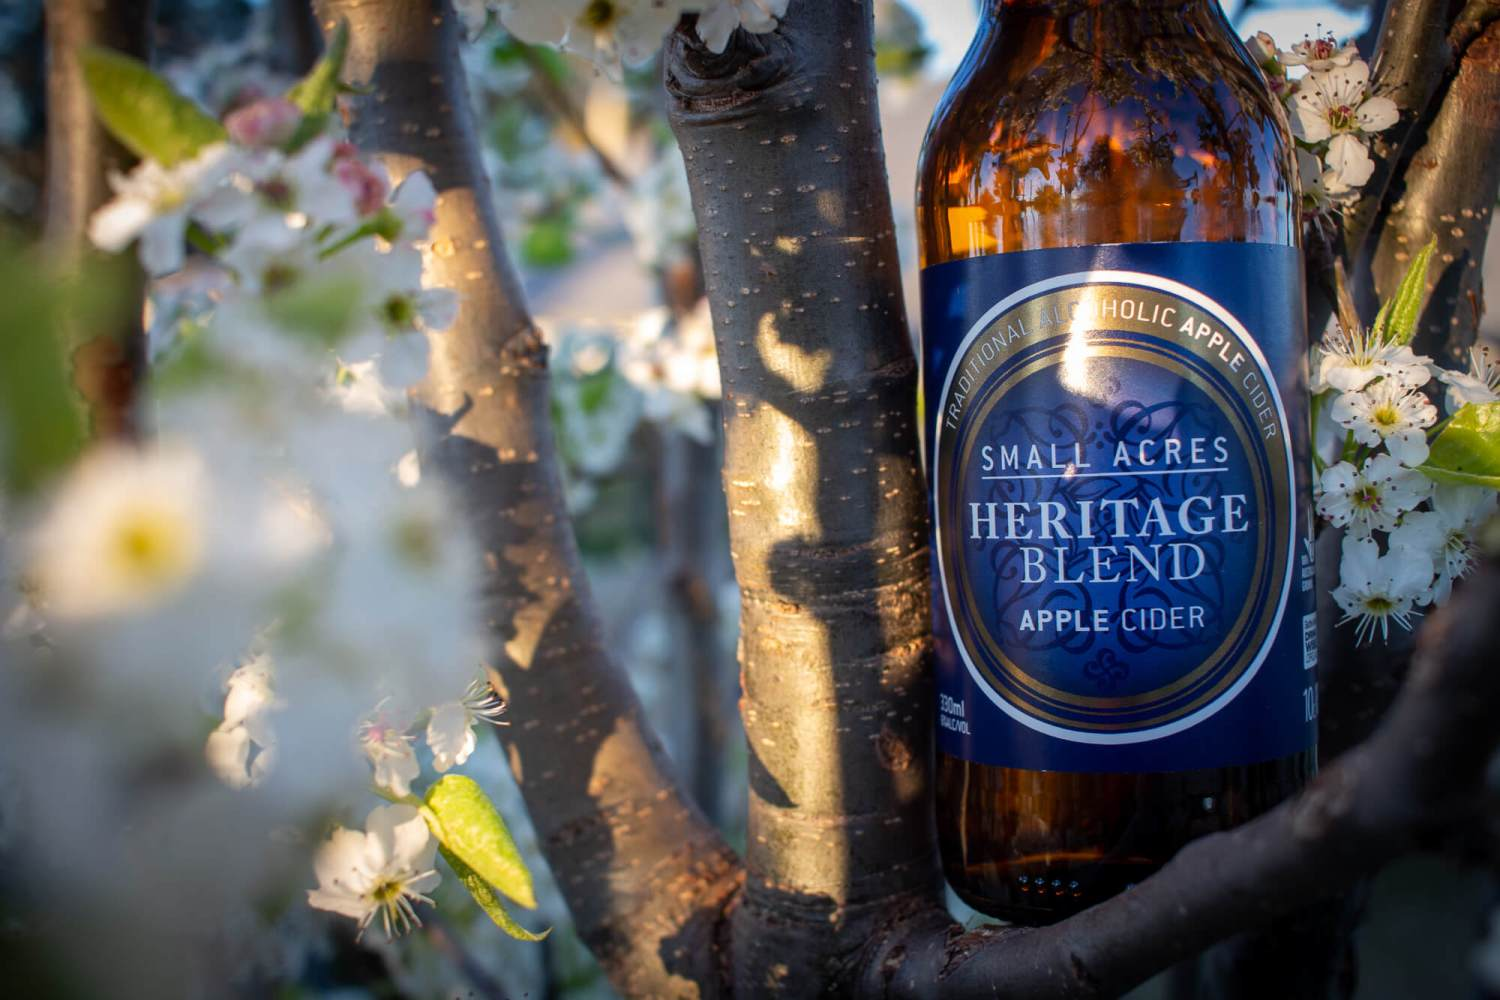 A Bottle of Small Acres Heritage Blend sitting in the branches of a blossoming tree